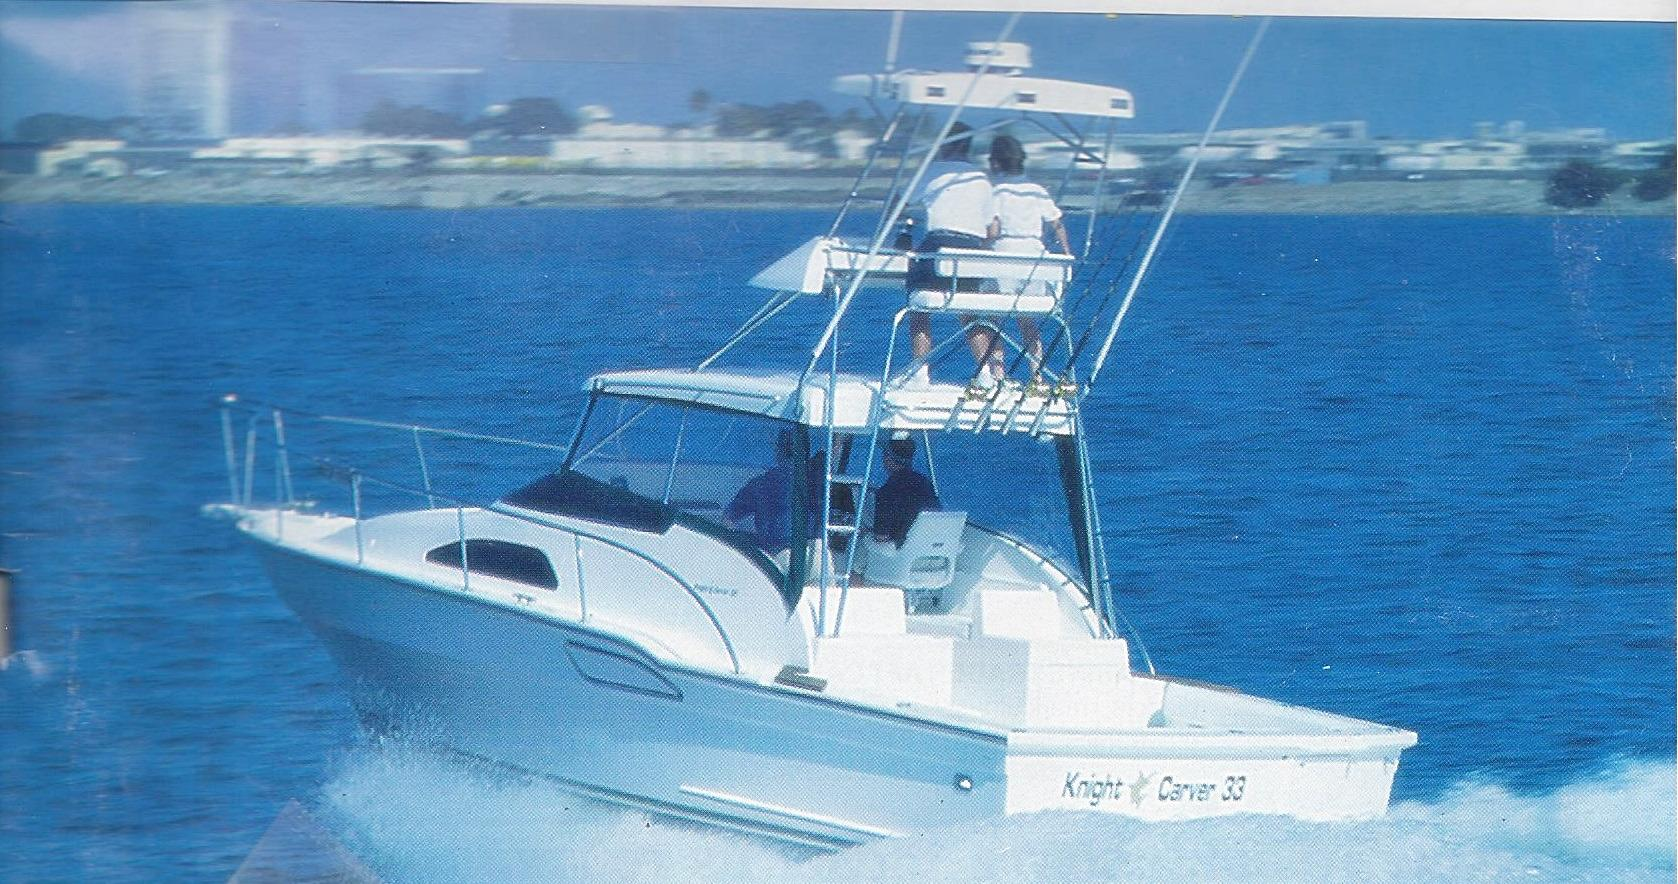 33' Knight & Carver Sportfisher+Boat for sale!